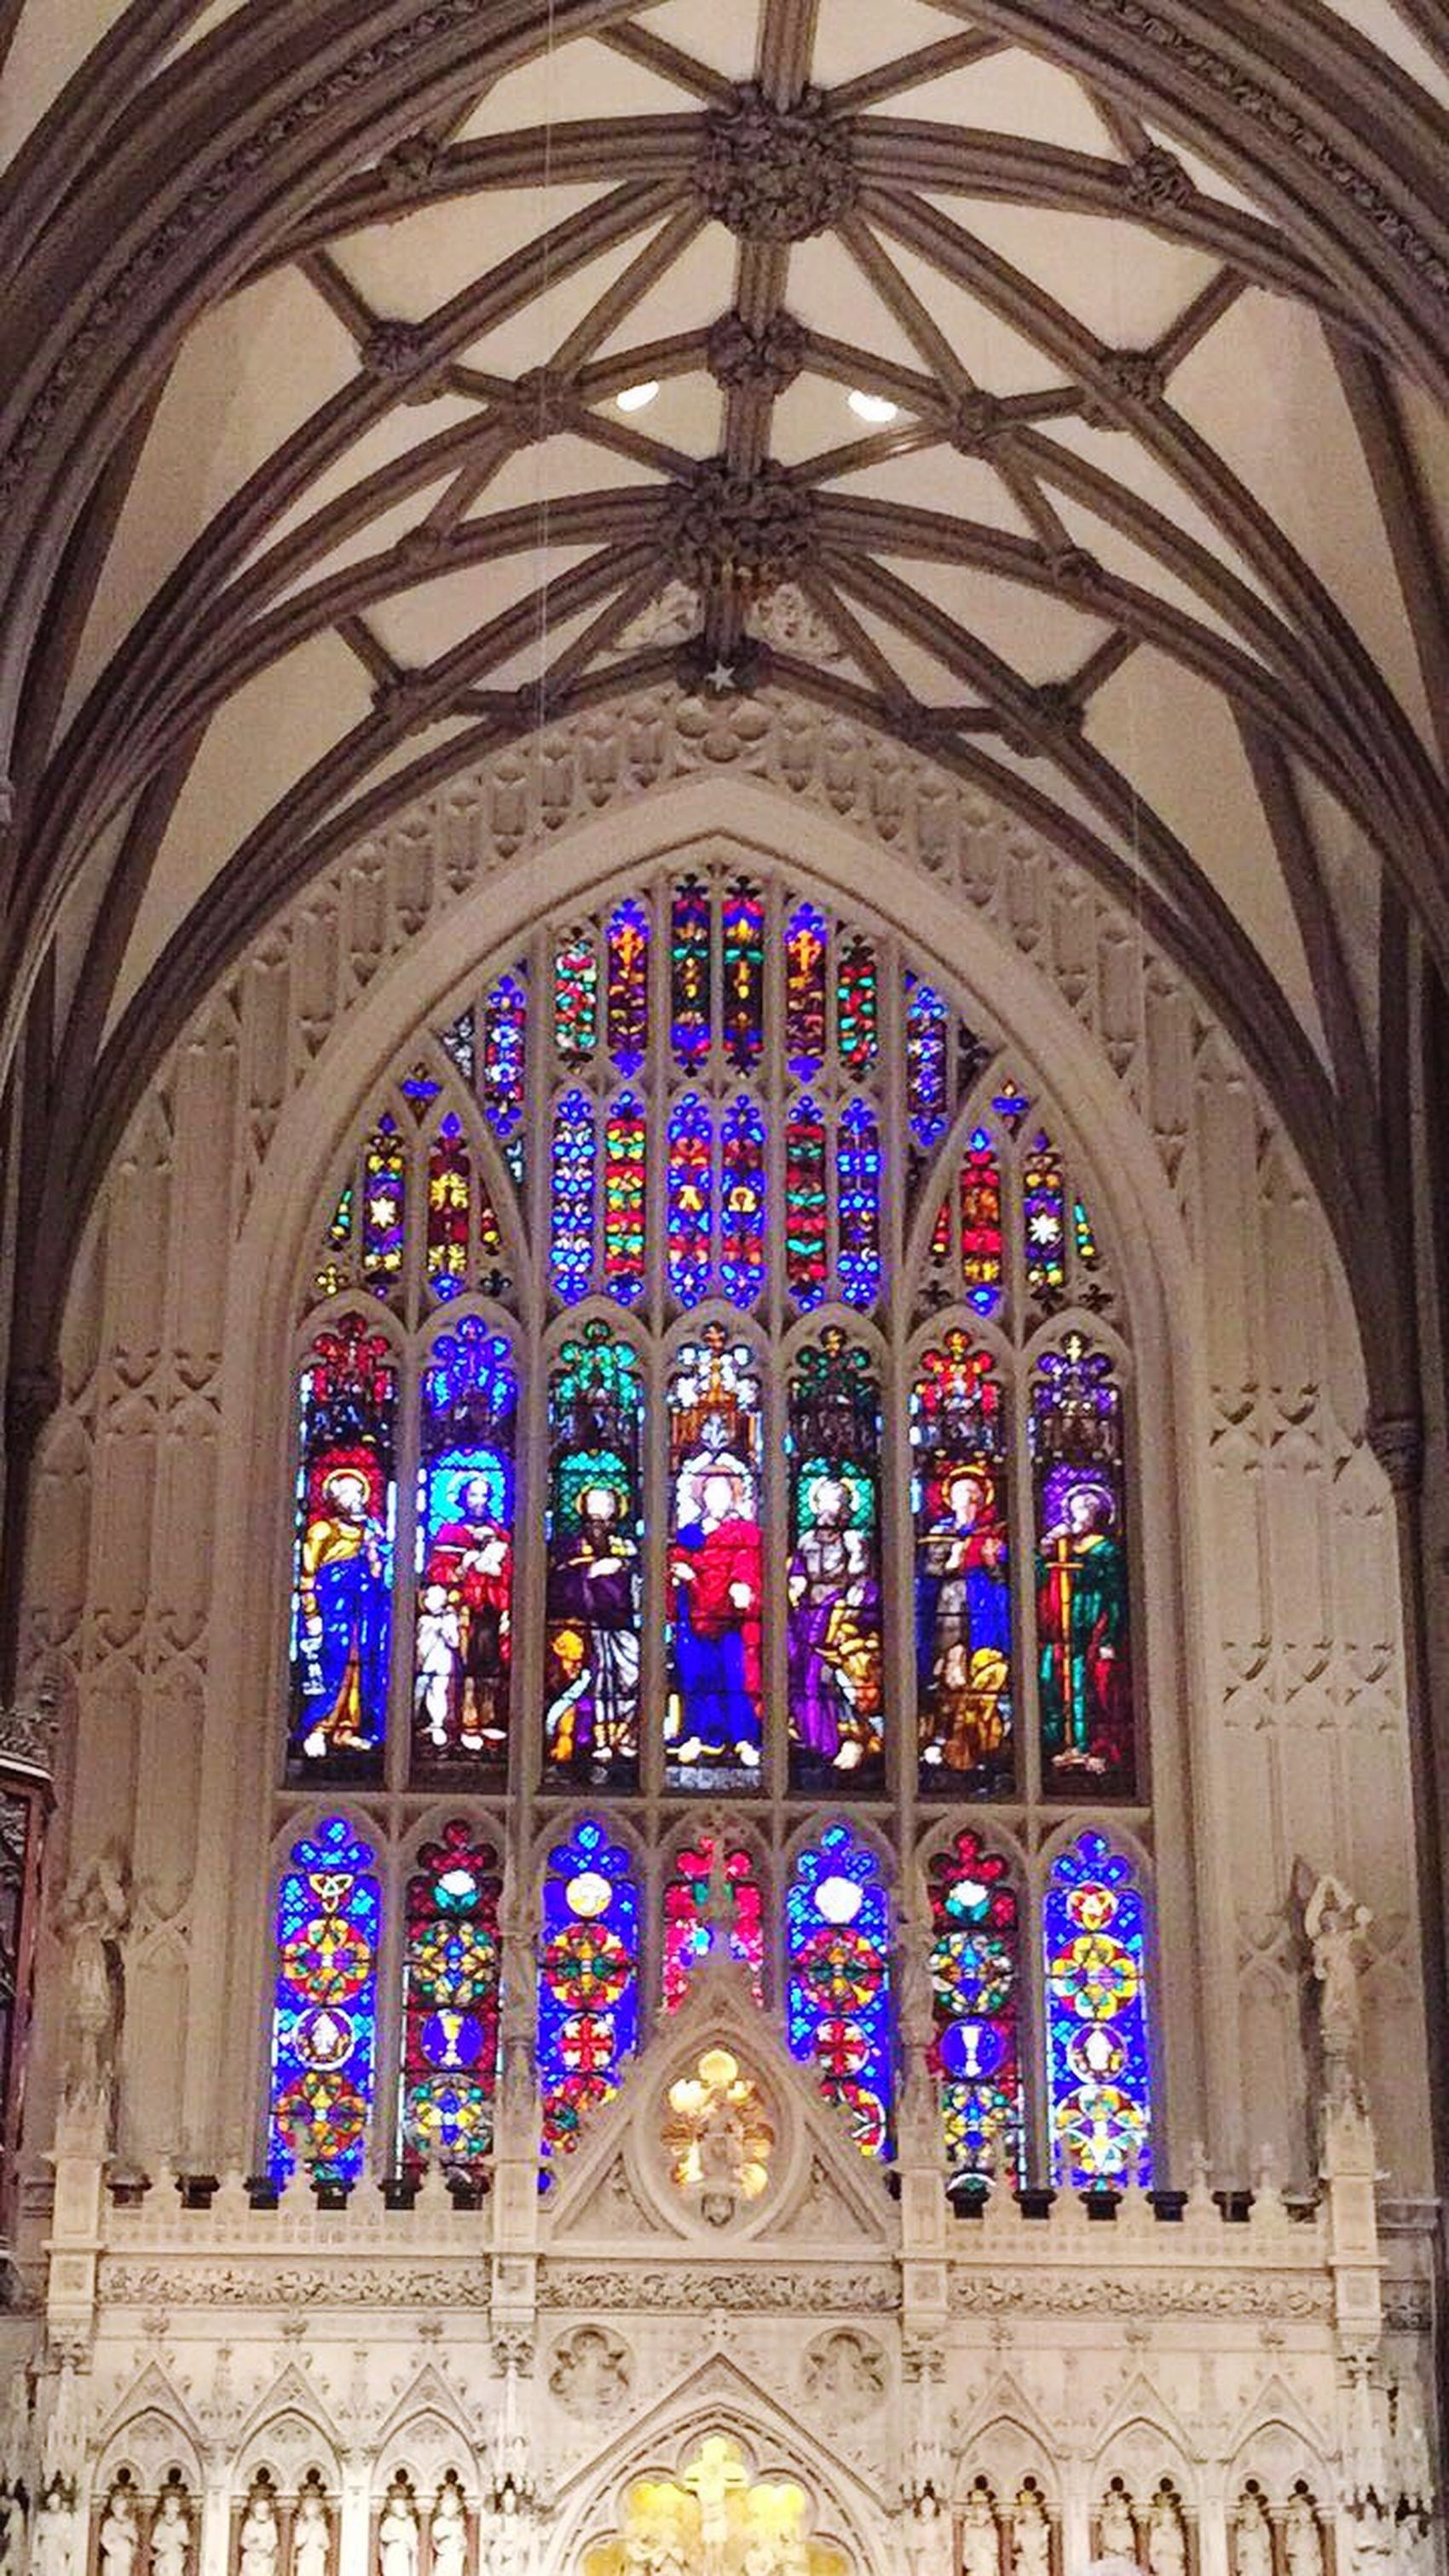 Place Of Worship Arch Architecture Stained Glass Religion Spirituality No People Indoors  Travel Destinations Day Built Structure Rose Window St Trinity Church Church Wall Street In New York City Wall Street  Newyork New York City New York New York, New York NYC NYC Photography Travel Travel Photography